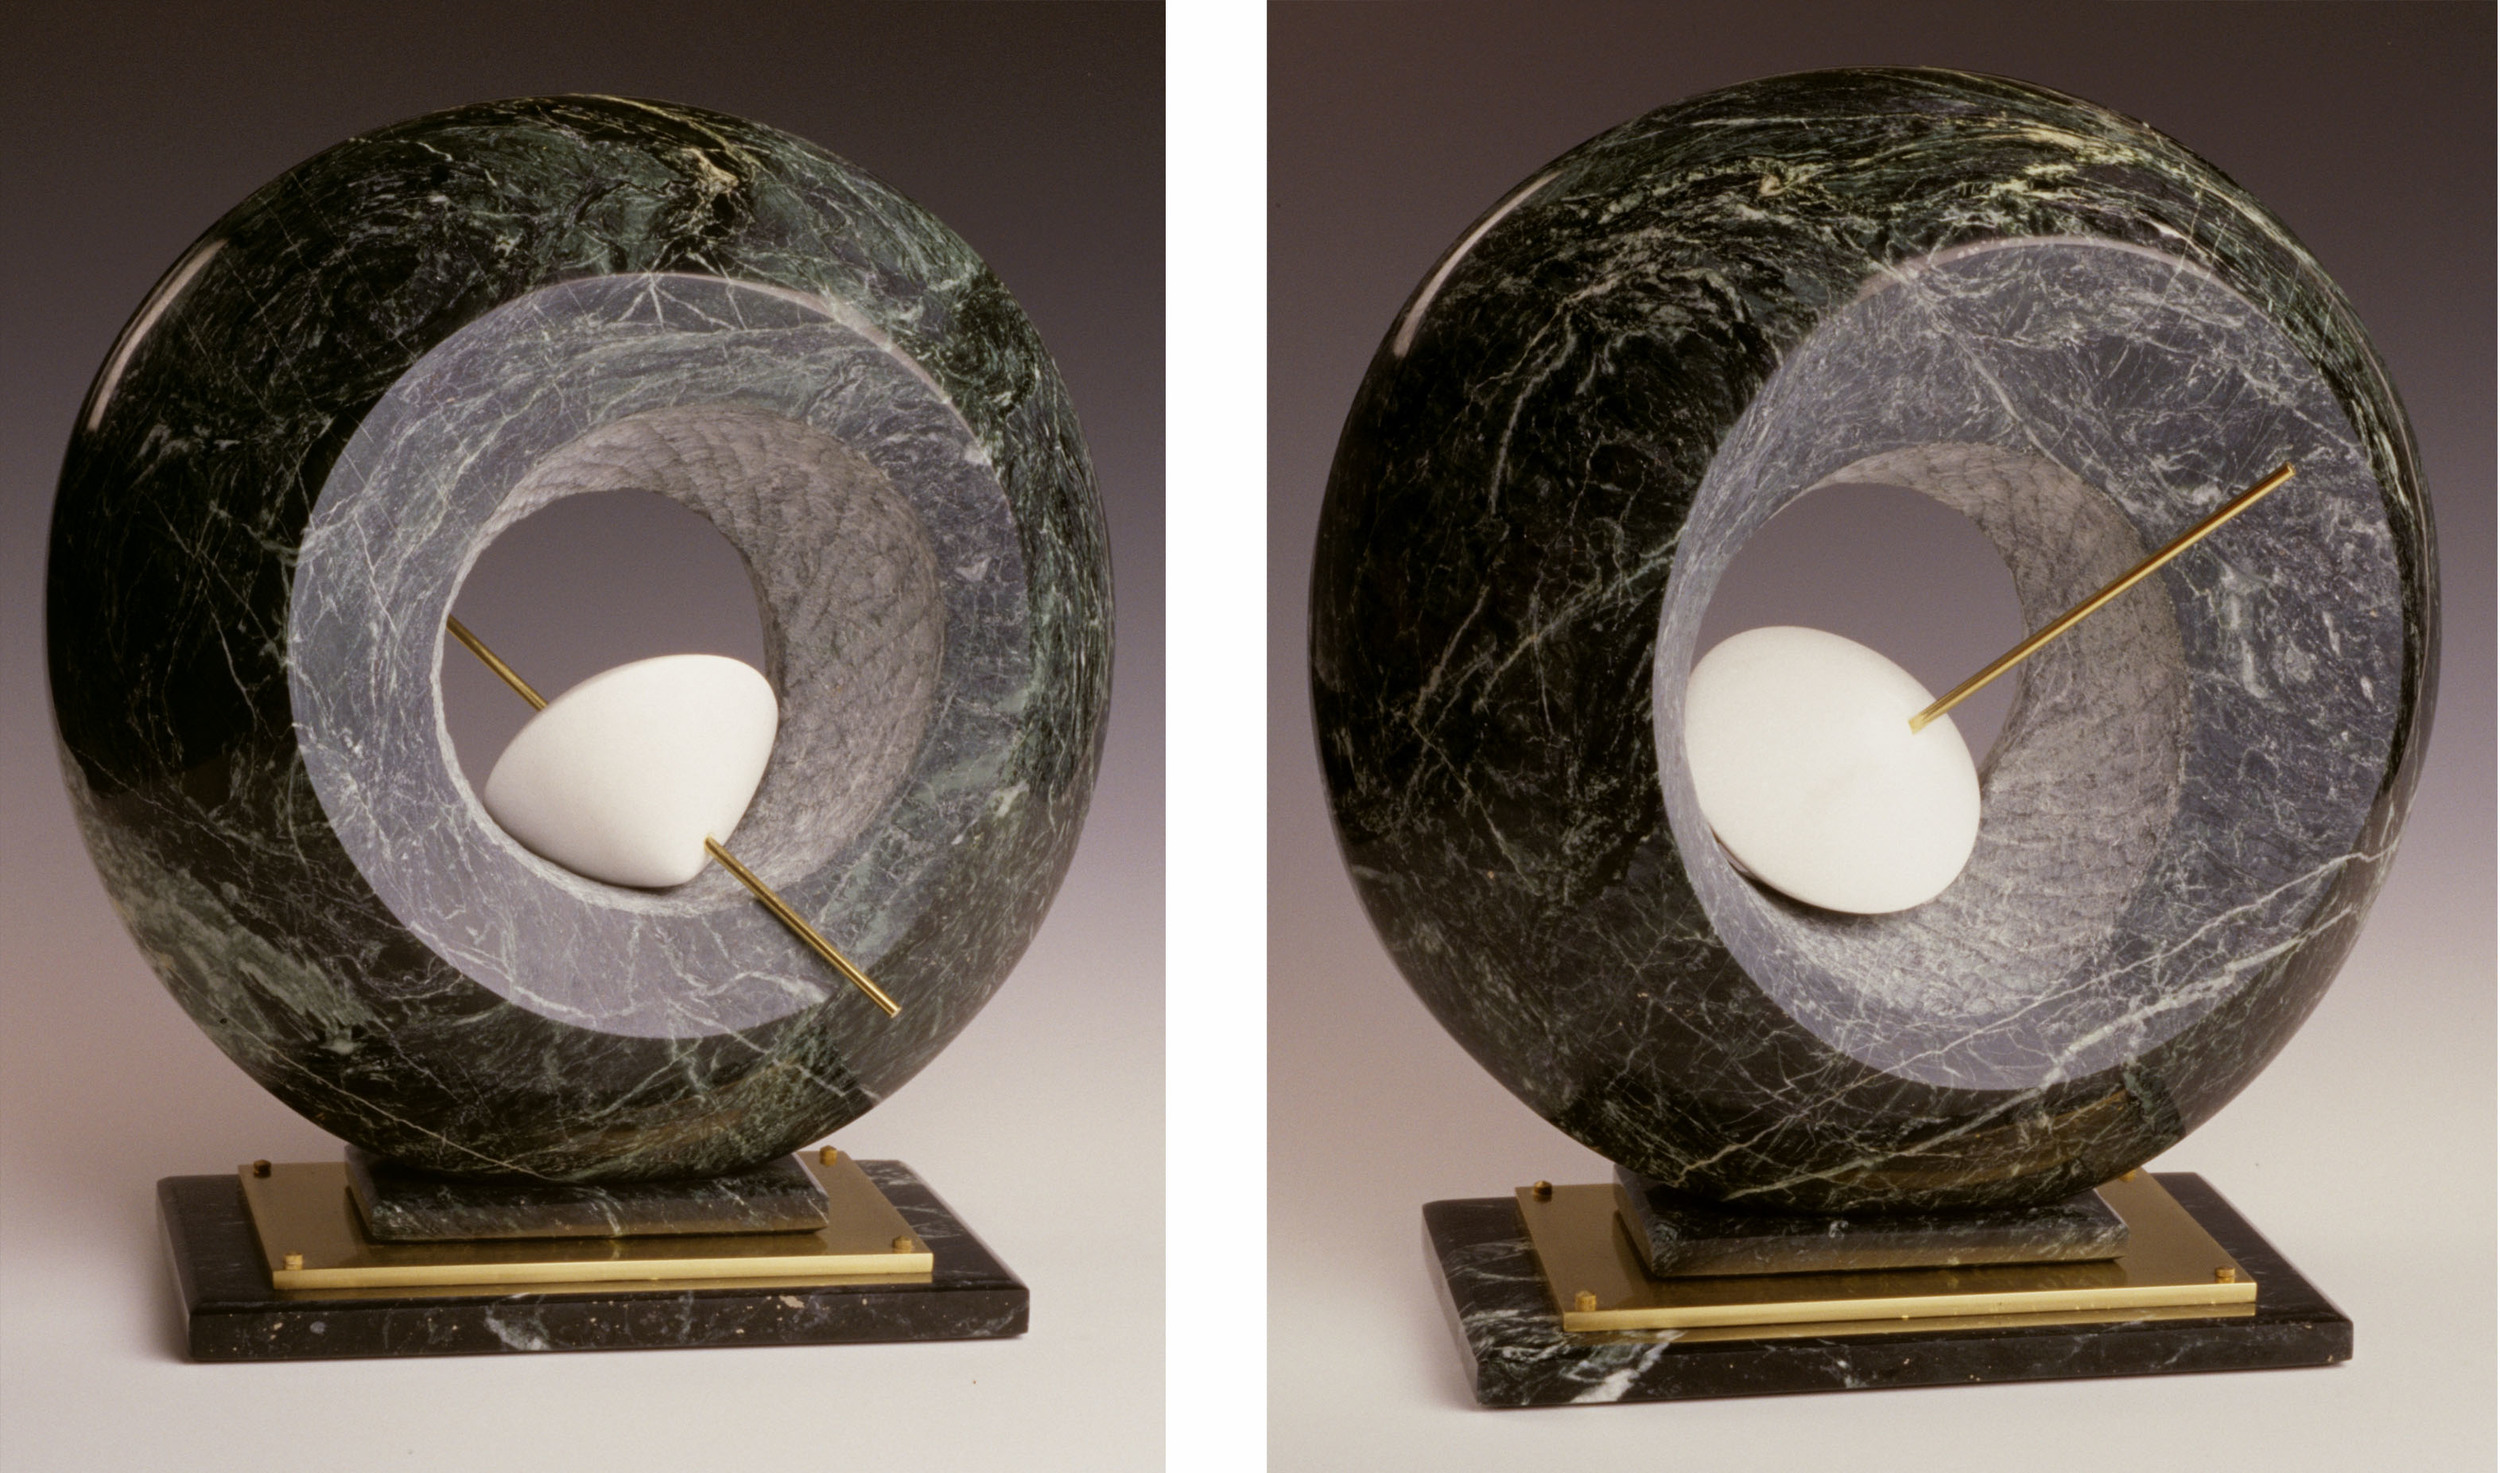 Unbound Hope - 16 x 14 x 7 inches - Verde Antique & Danby marble with brass